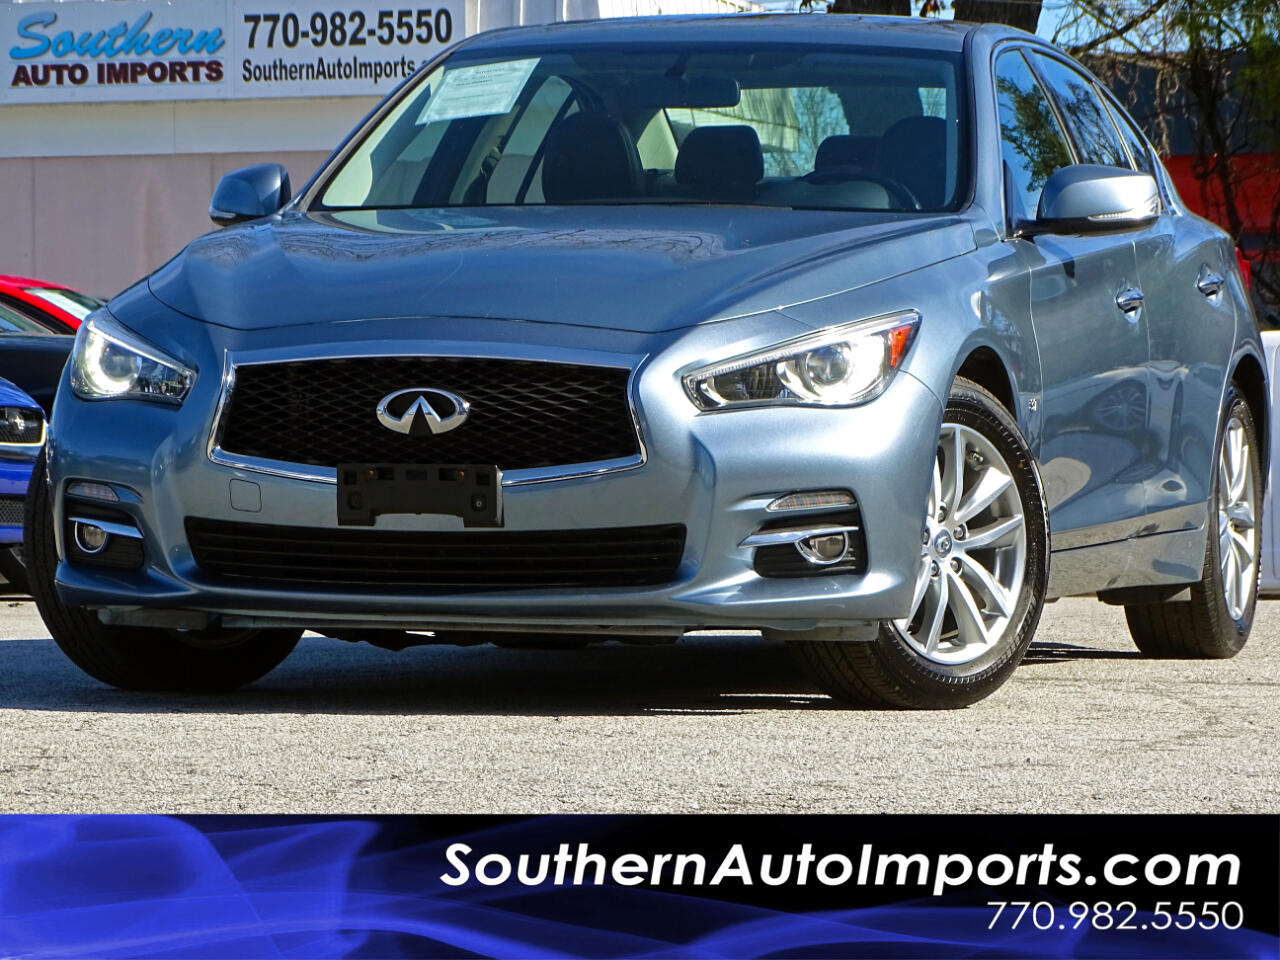 2015 Infiniti Q50 AWD w/Back up Camera Sunroof